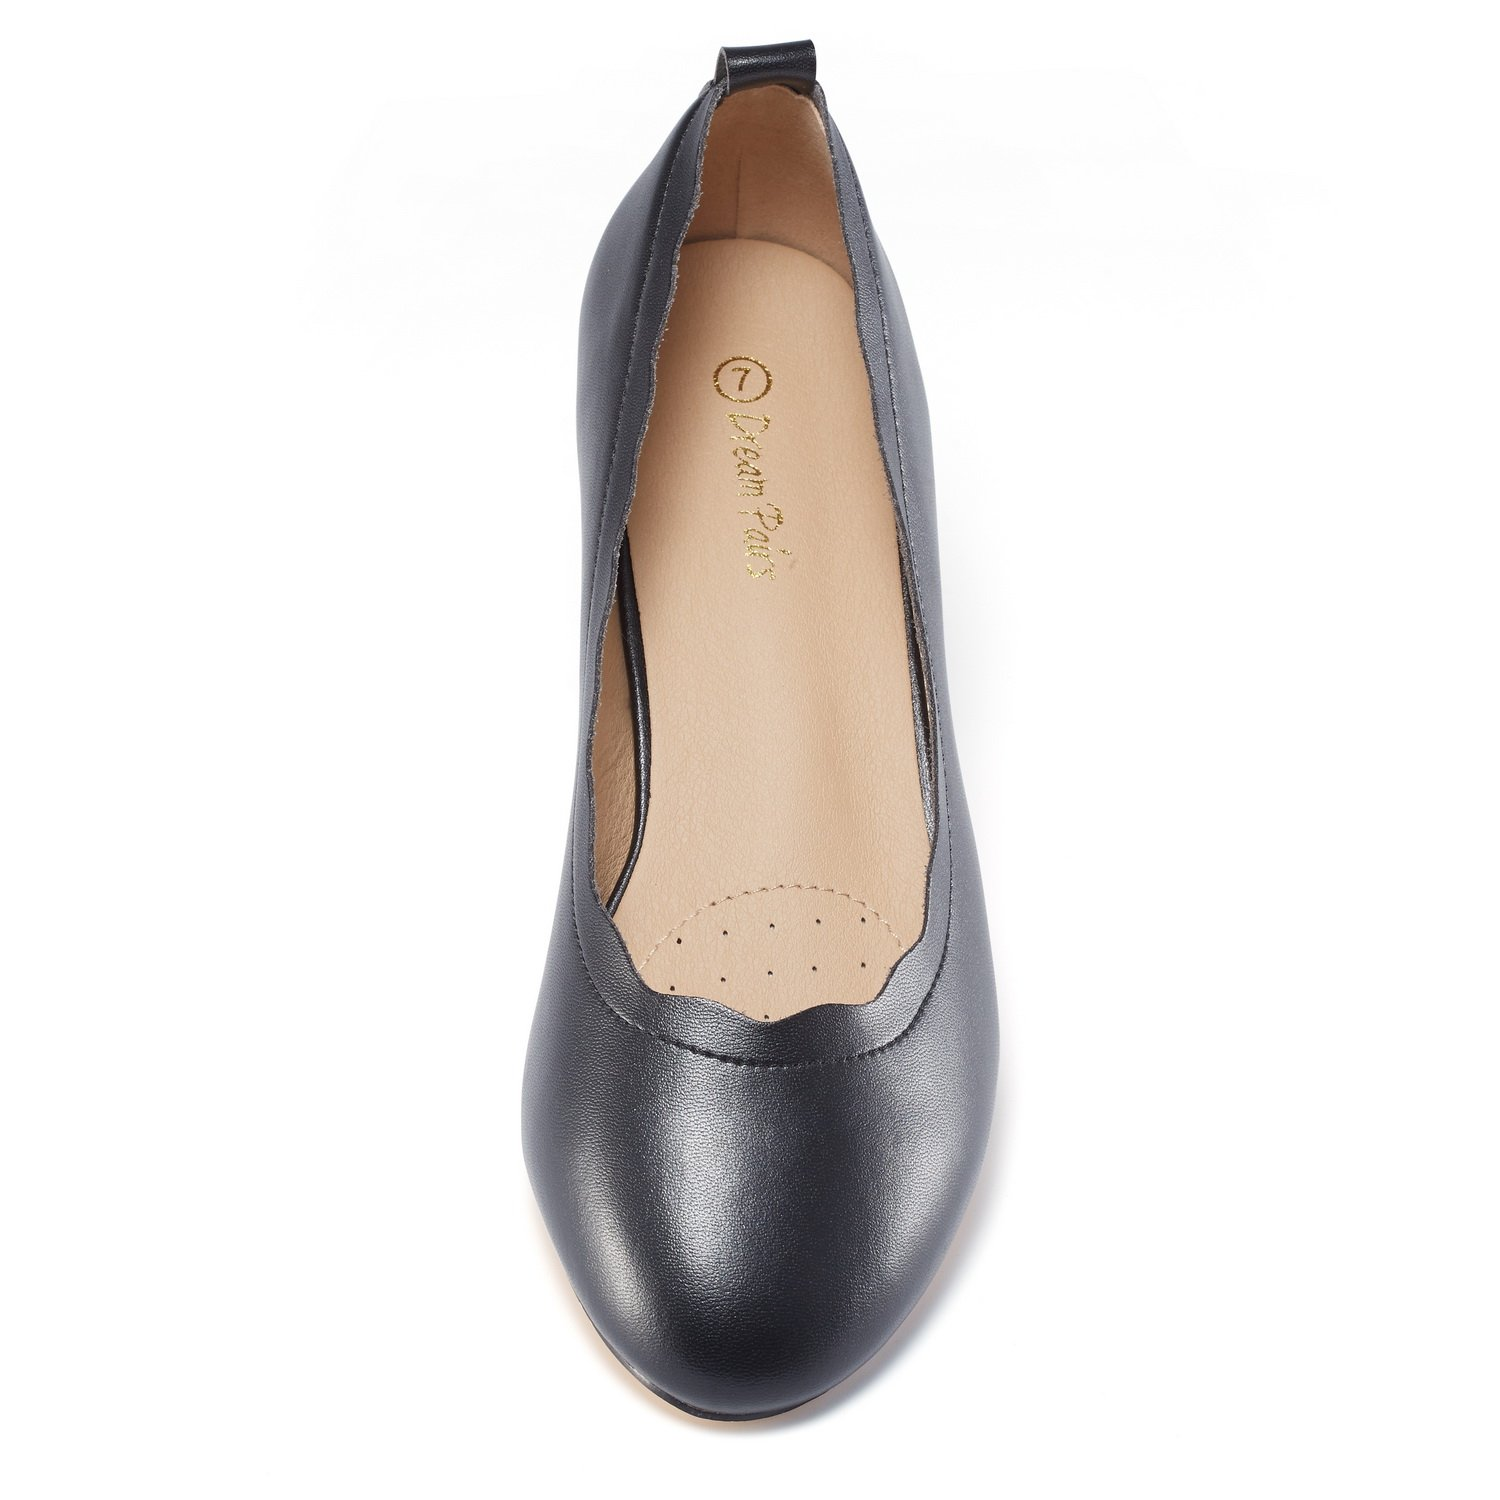 DREAM PAIRS Women's Sole_Elle Black/PU Fashion Low Stacked Slip On Flats Shoes Size 8.5 M US by DREAM PAIRS (Image #3)